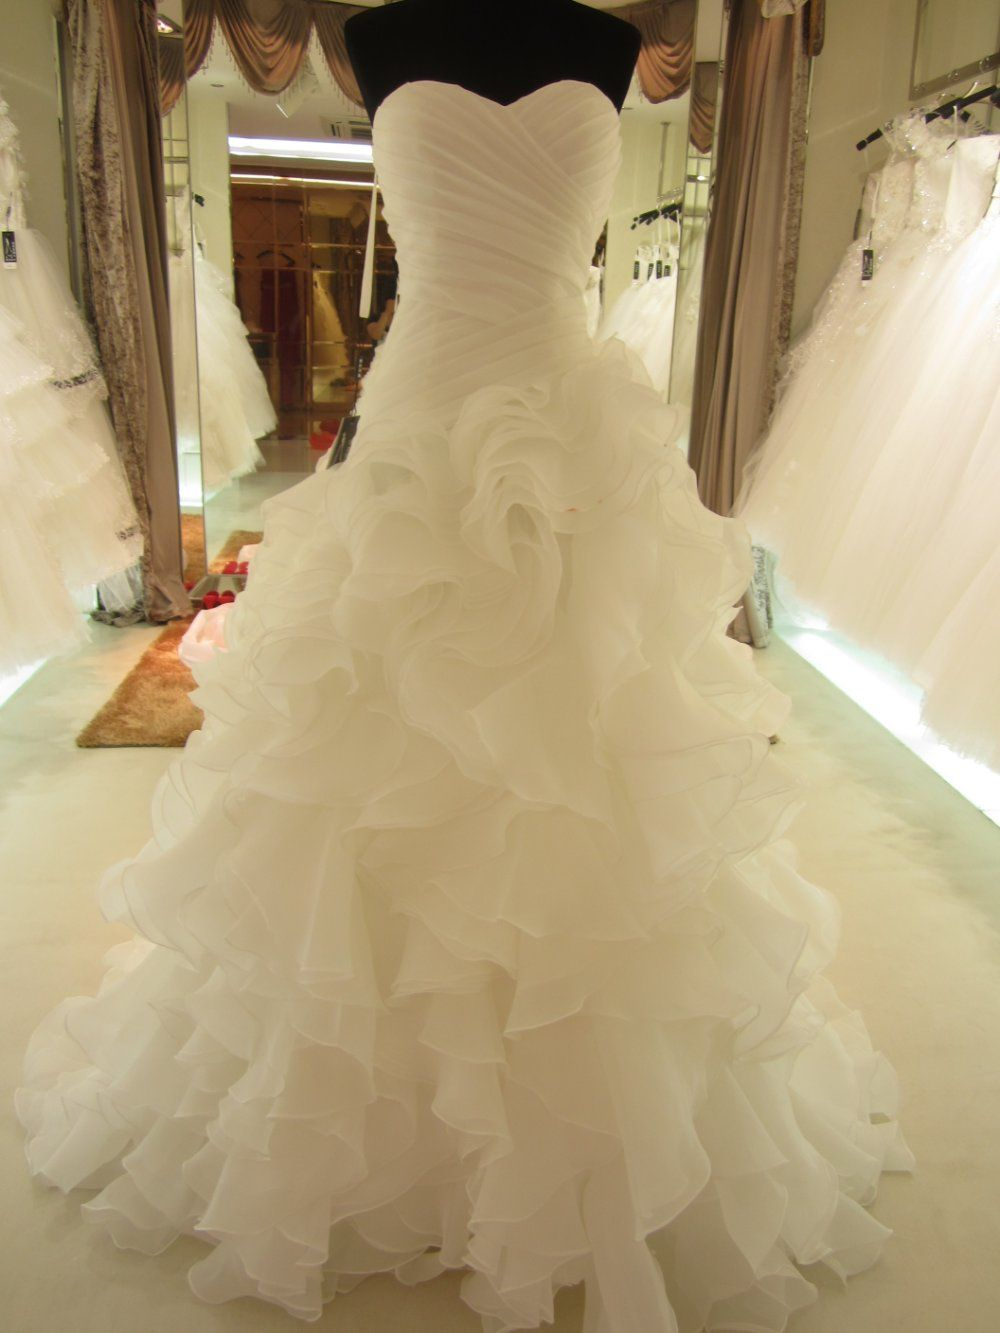 wedding dresses for sale Hot Sale Real Picture Organza Ruffle Wedding Dress Bridal Gown sl on